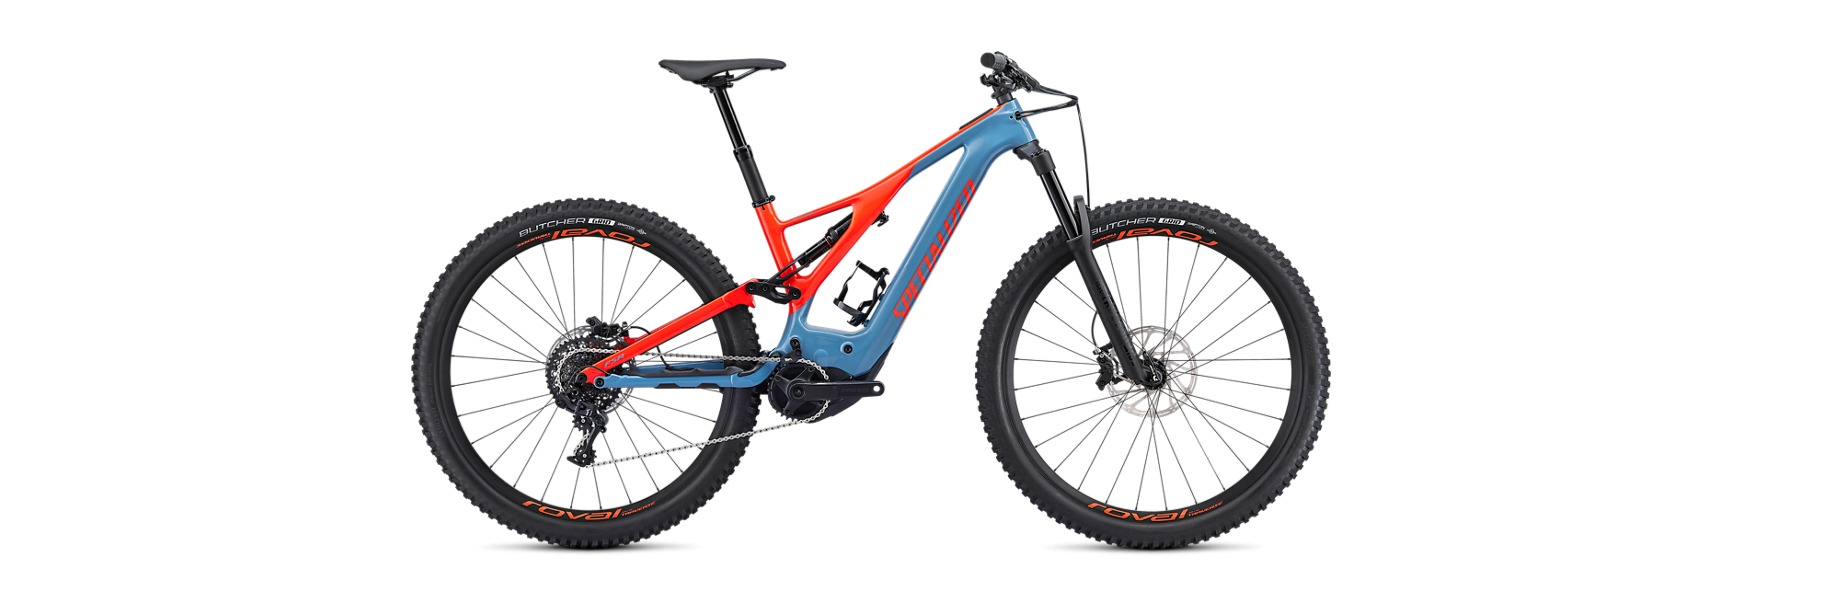 Specialized Turbo Levo e-MTBs